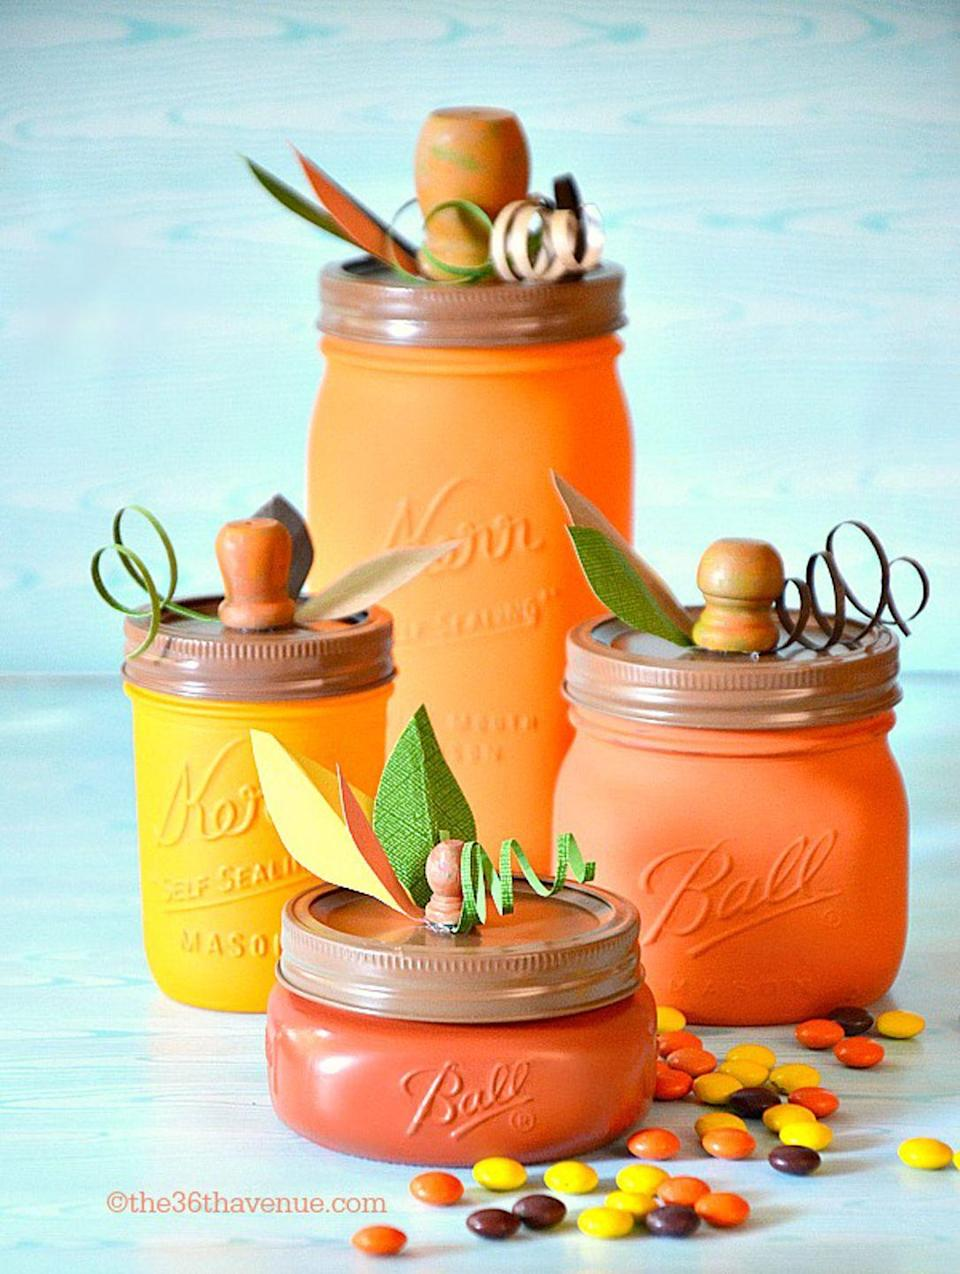 """<p>These pretty painted containers can work as a <a href=""""https://www.countryliving.com/diy-crafts/g2009/fall-centerpieces/"""" rel=""""nofollow noopener"""" target=""""_blank"""" data-ylk=""""slk:centerpiece"""" class=""""link rapid-noclick-resp"""">centerpiece</a>, as candy jars, or both!</p><p><strong>Get the tutorial at <a href=""""http://www.the36thavenue.com/diy-pumpkin-mason-jars/"""" rel=""""nofollow noopener"""" target=""""_blank"""" data-ylk=""""slk:The 36th Avenue"""" class=""""link rapid-noclick-resp"""">The 36th Avenue</a>.</strong></p>"""